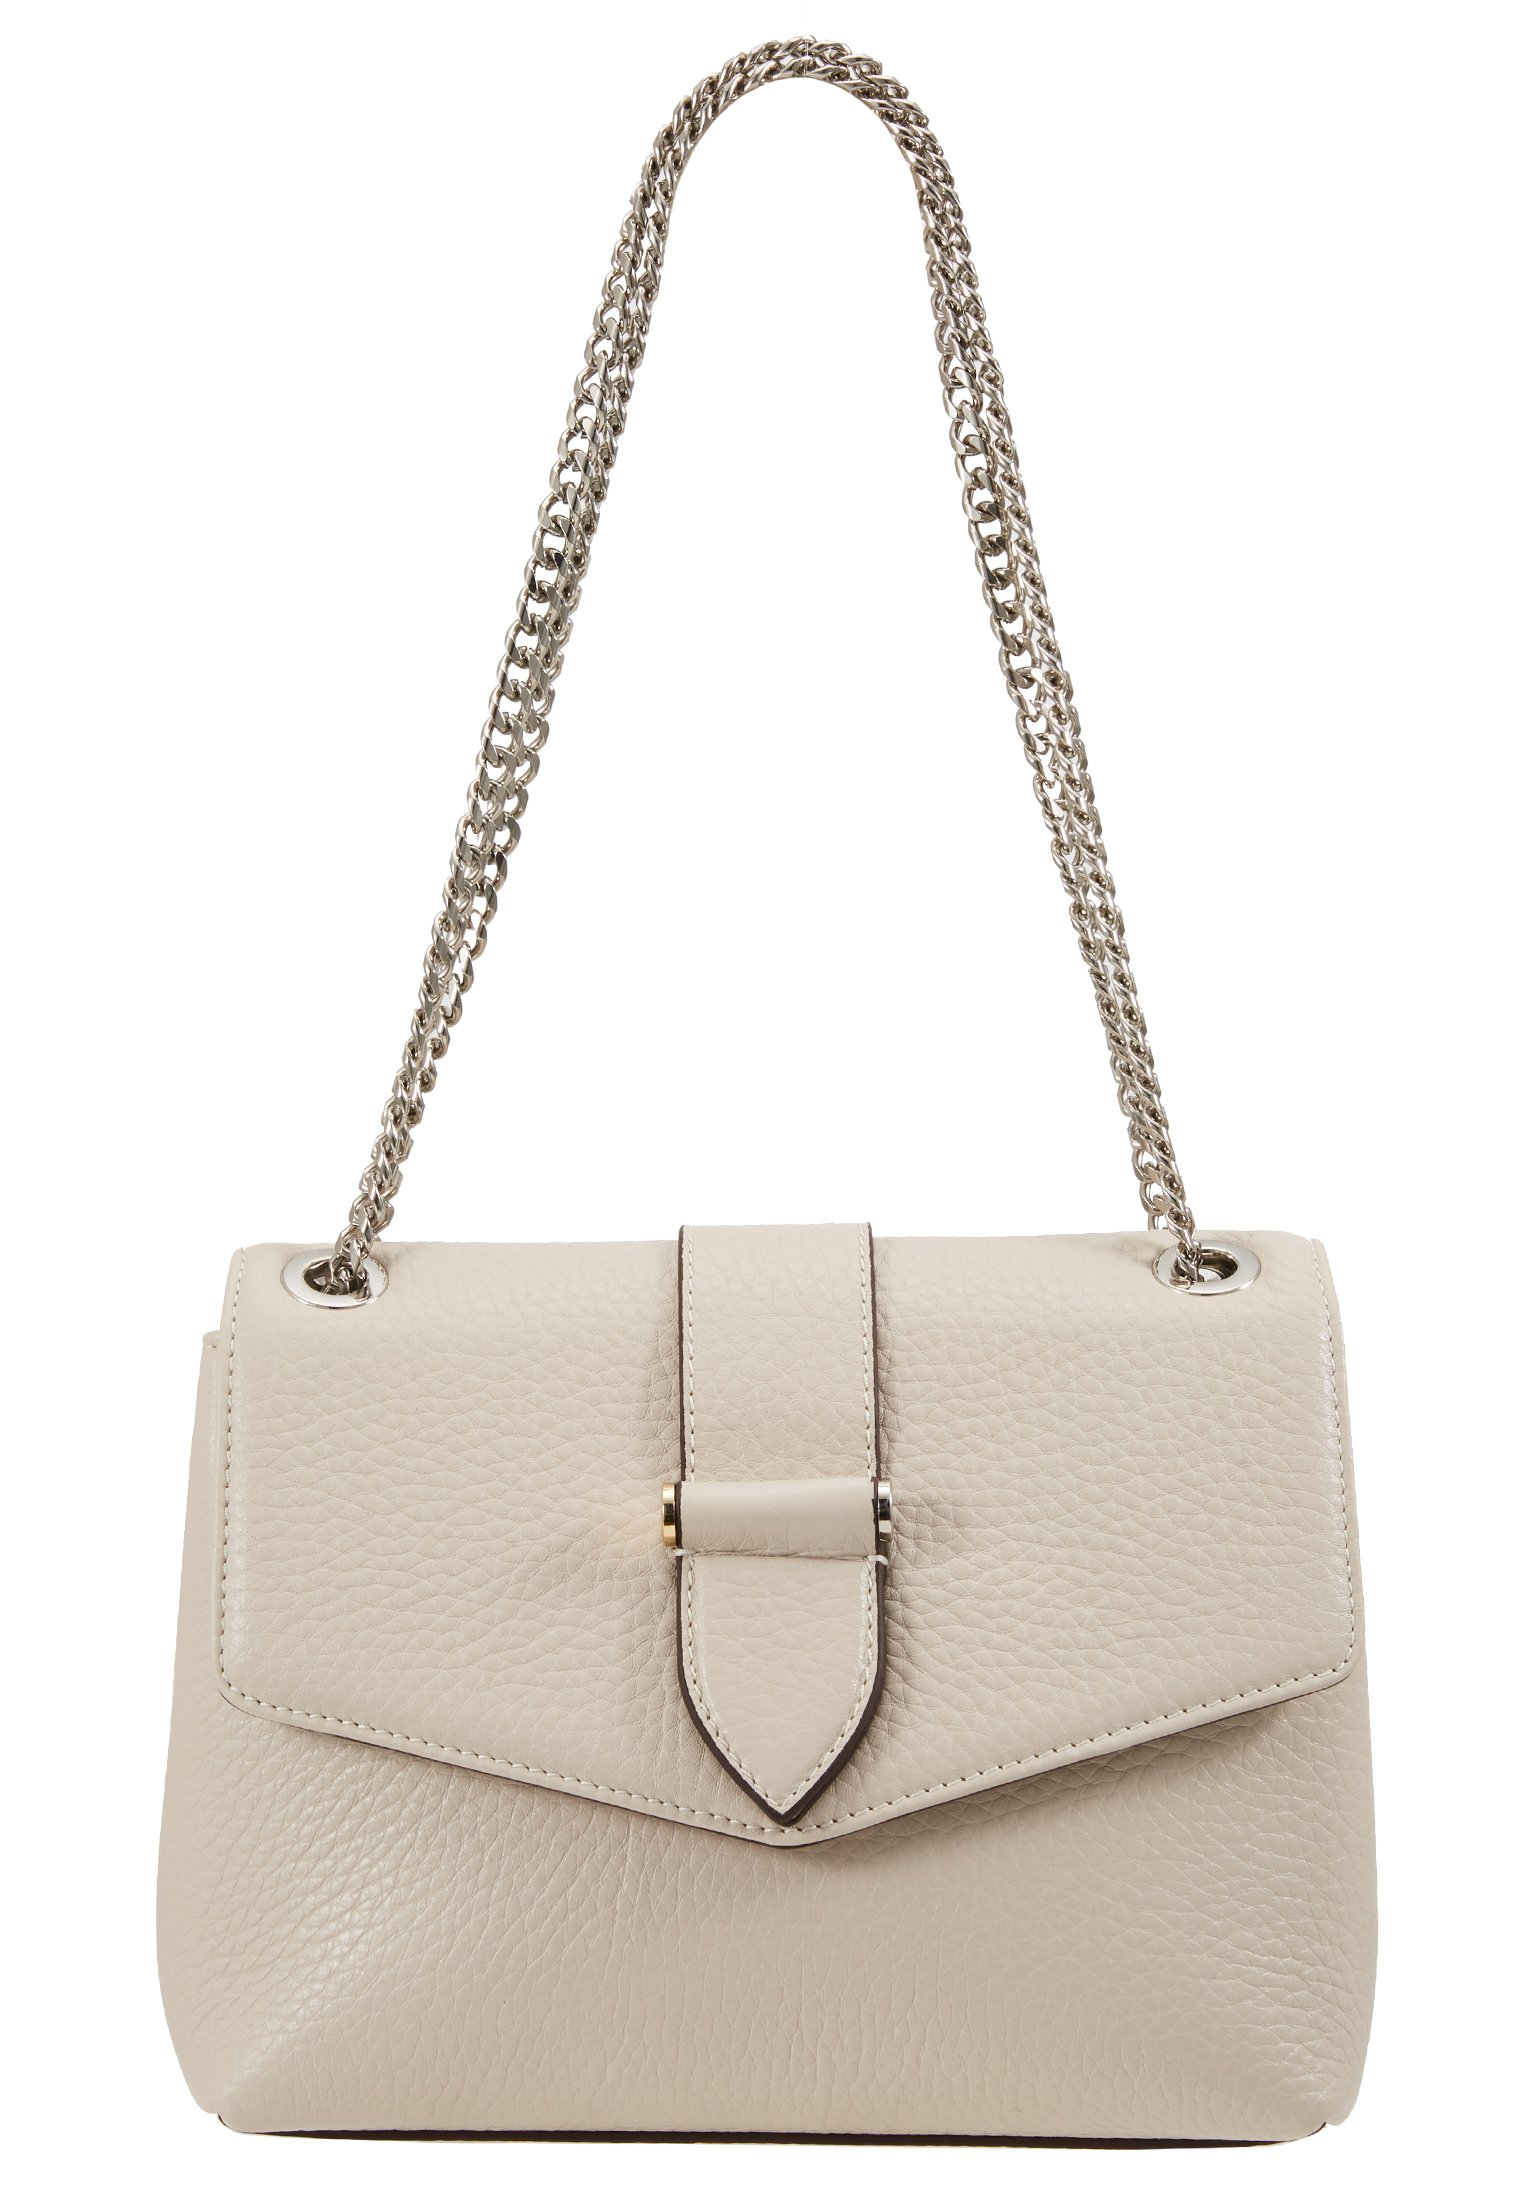 Decadent Copenhagen Maria Medium Chain Bag - Sac Bandoulière Oat